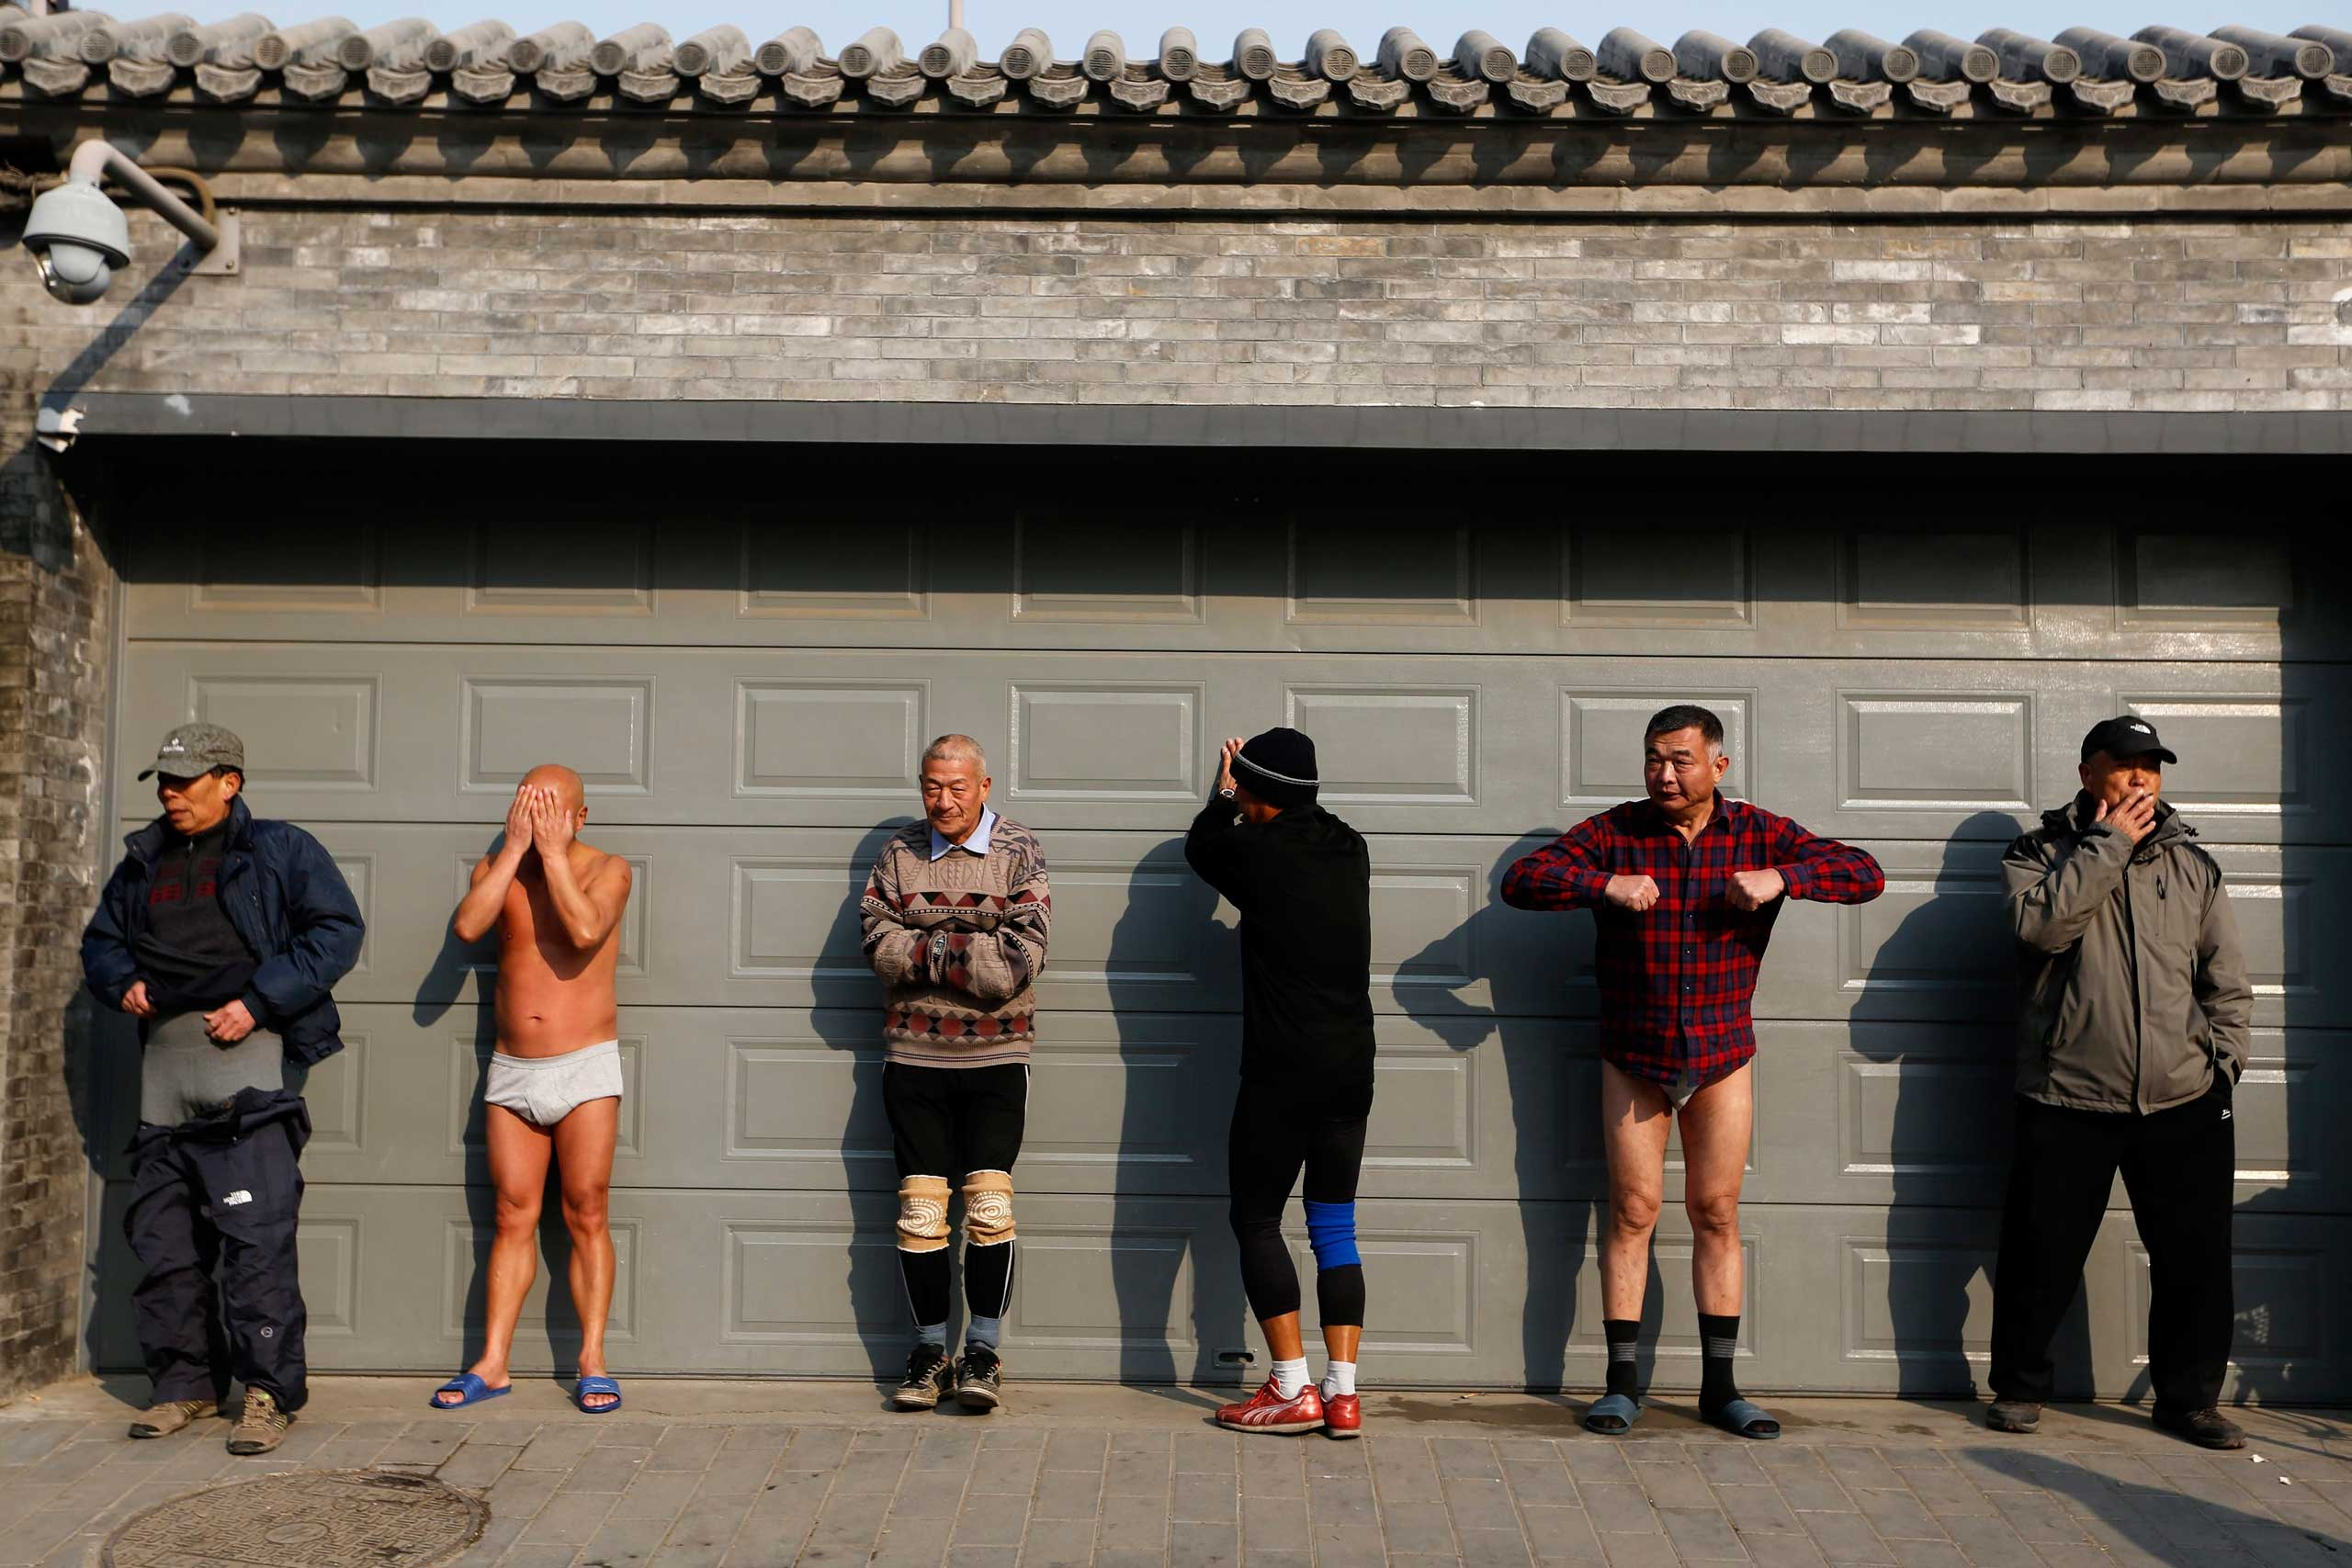 Chinese winter swimming enthusiasts warm up before swimming in the half-frozen Houhai lake with a water temperature around two degrees Celsius in Beijing, China, Jan. 12 2015.